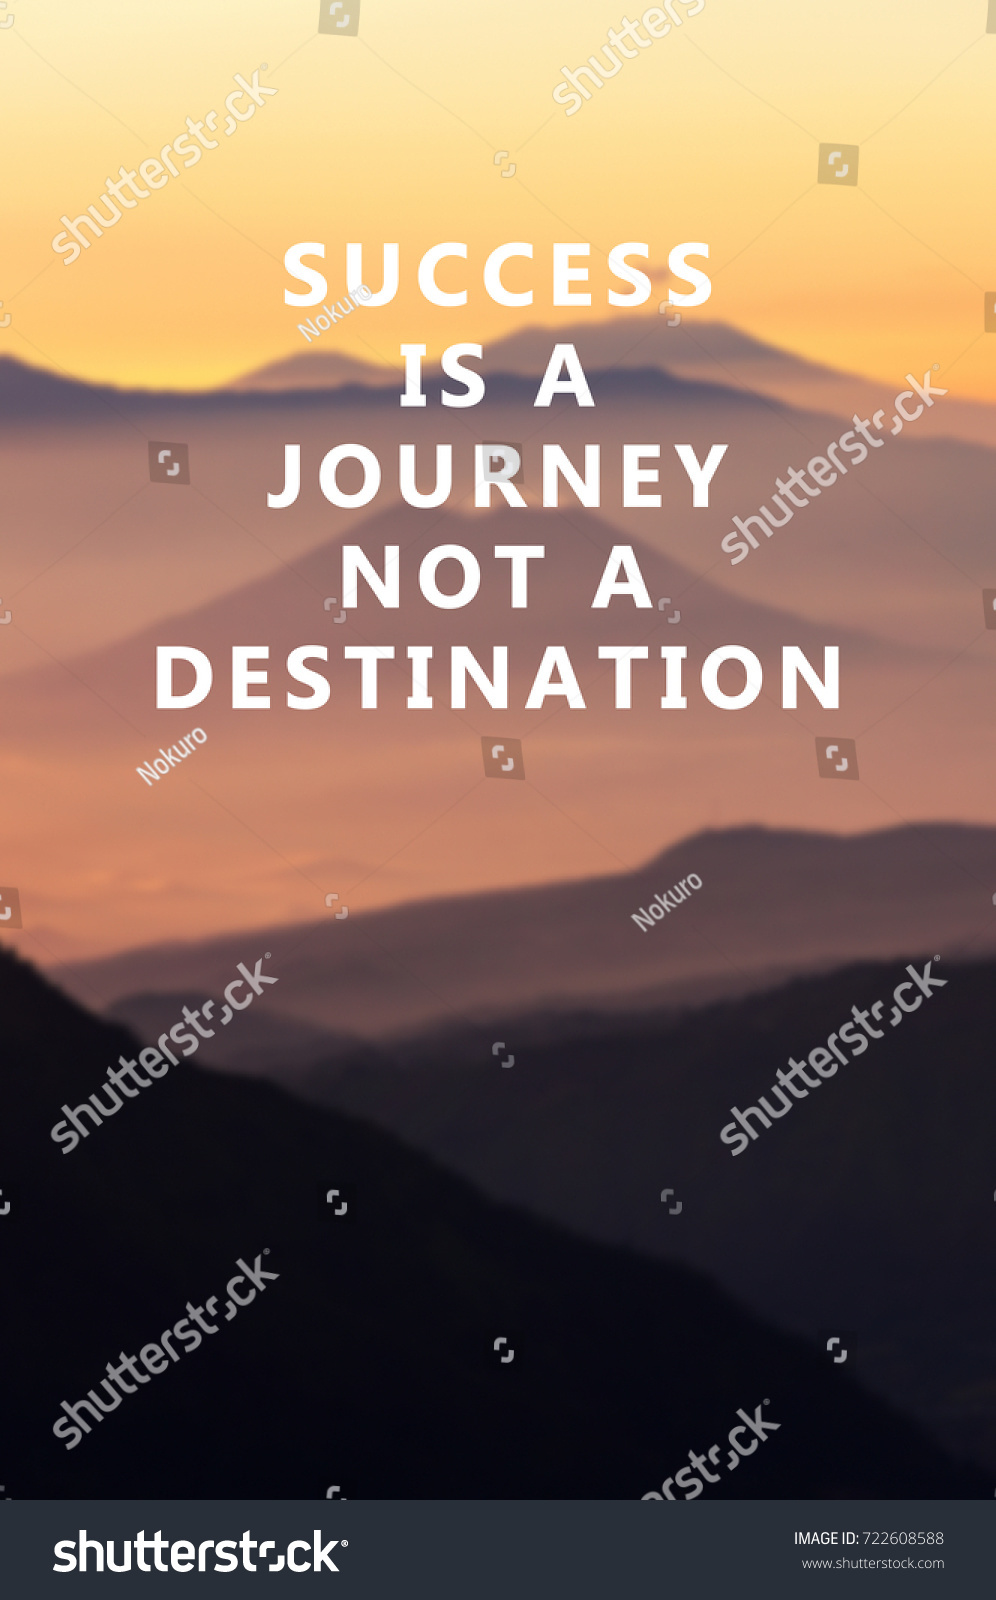 Quotes Life Journey Life Motivational Inspirational Quotes Success Journey Stock Photo